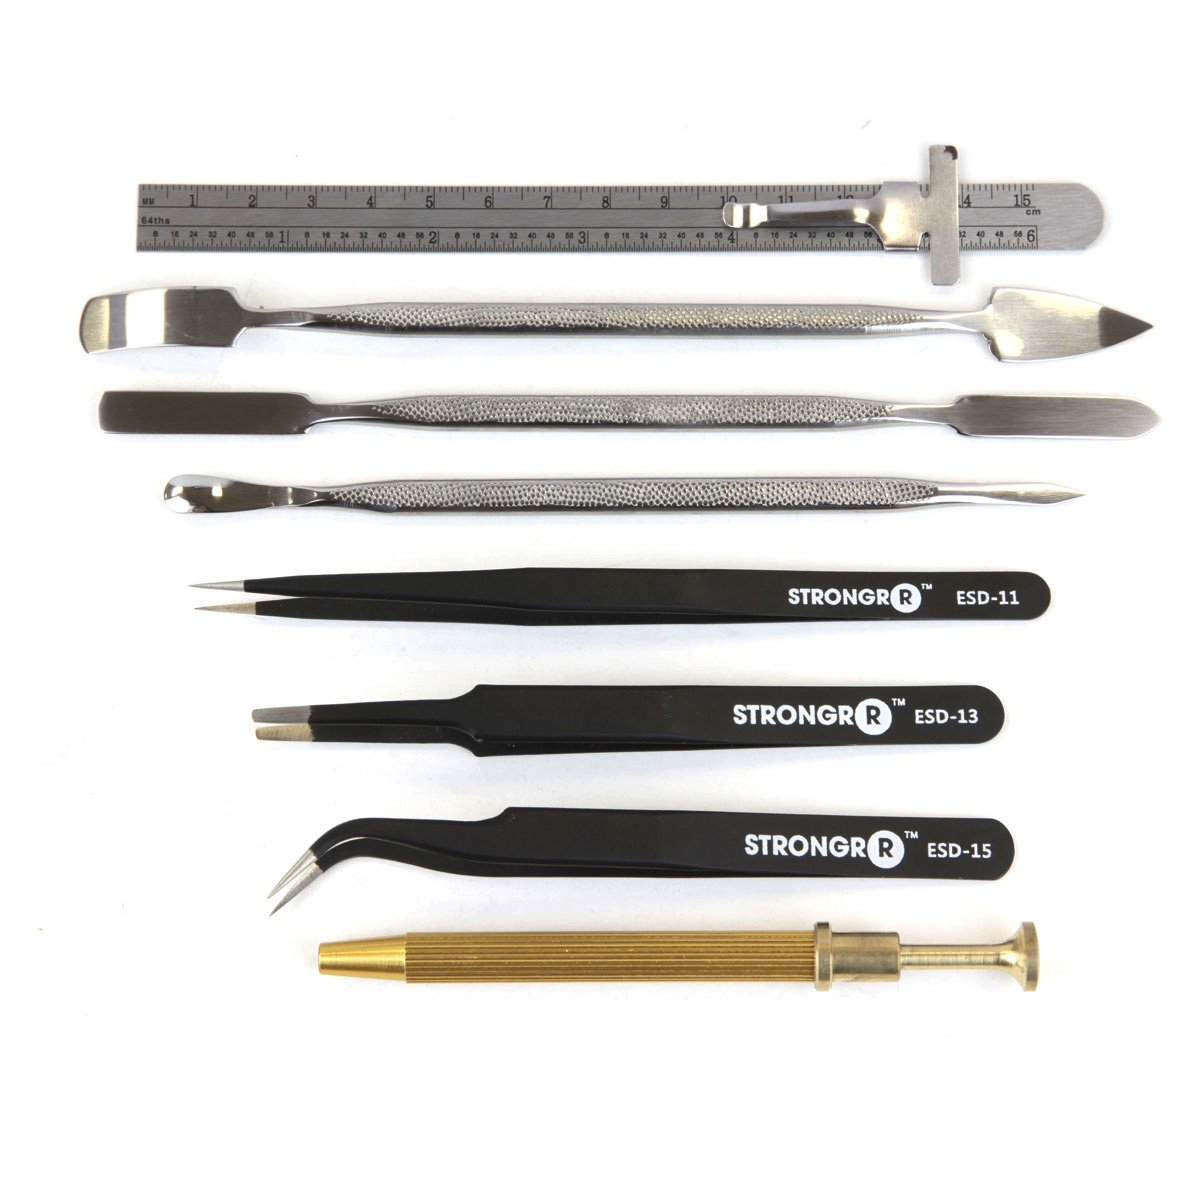 Professional Tool Kit Electronic Technician Repair Tool Set for Computers, PC, Laptops, TVs, Radios and other Electronic Devices by Strongrr (Image #4)